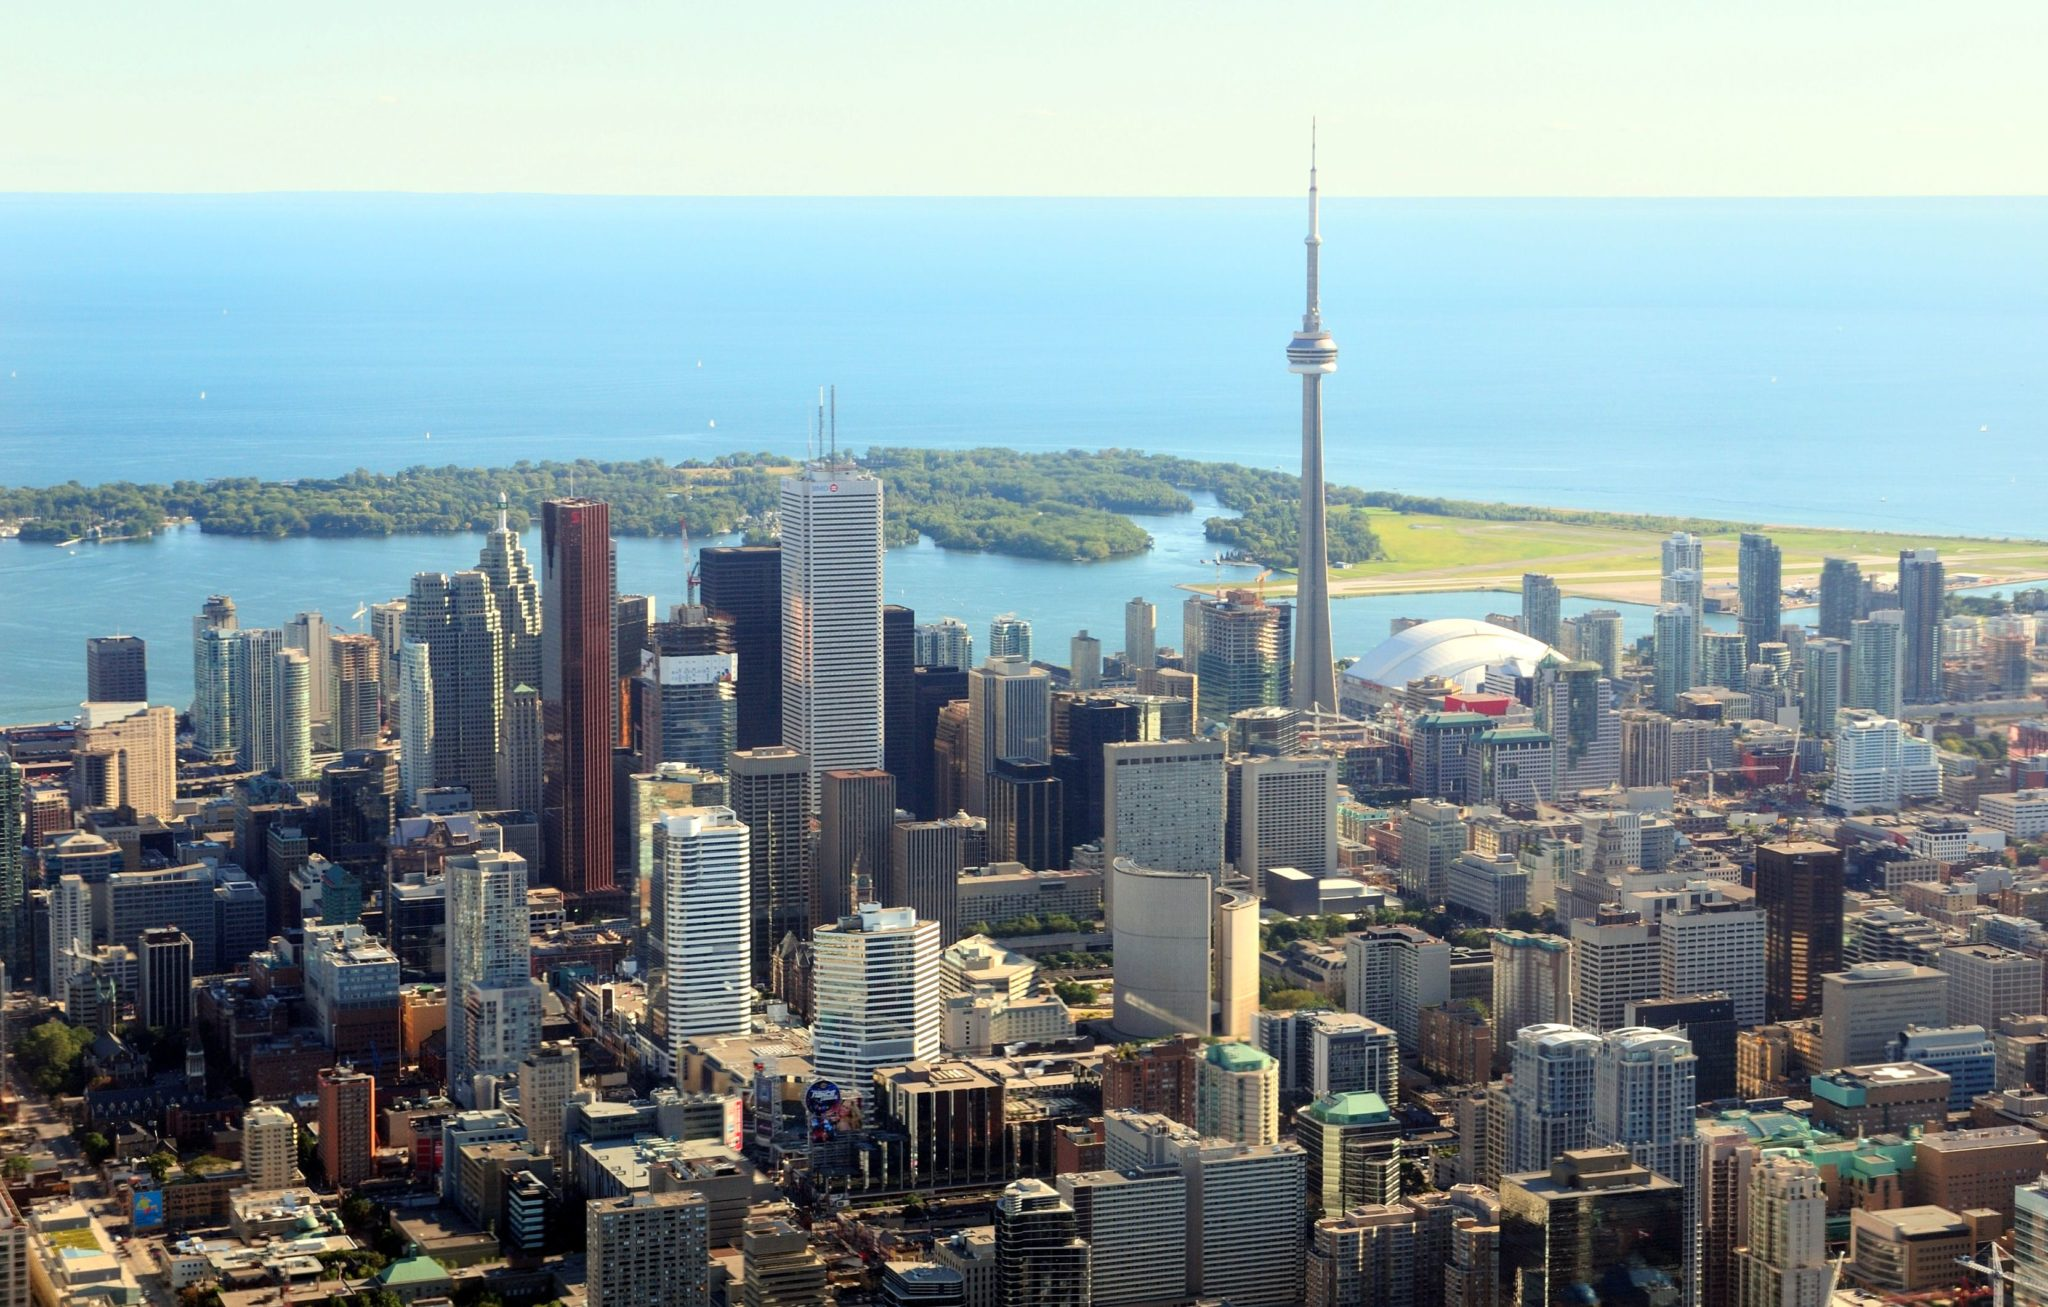 Image of Downtown Toronto, Canada with view of CN Tower and water